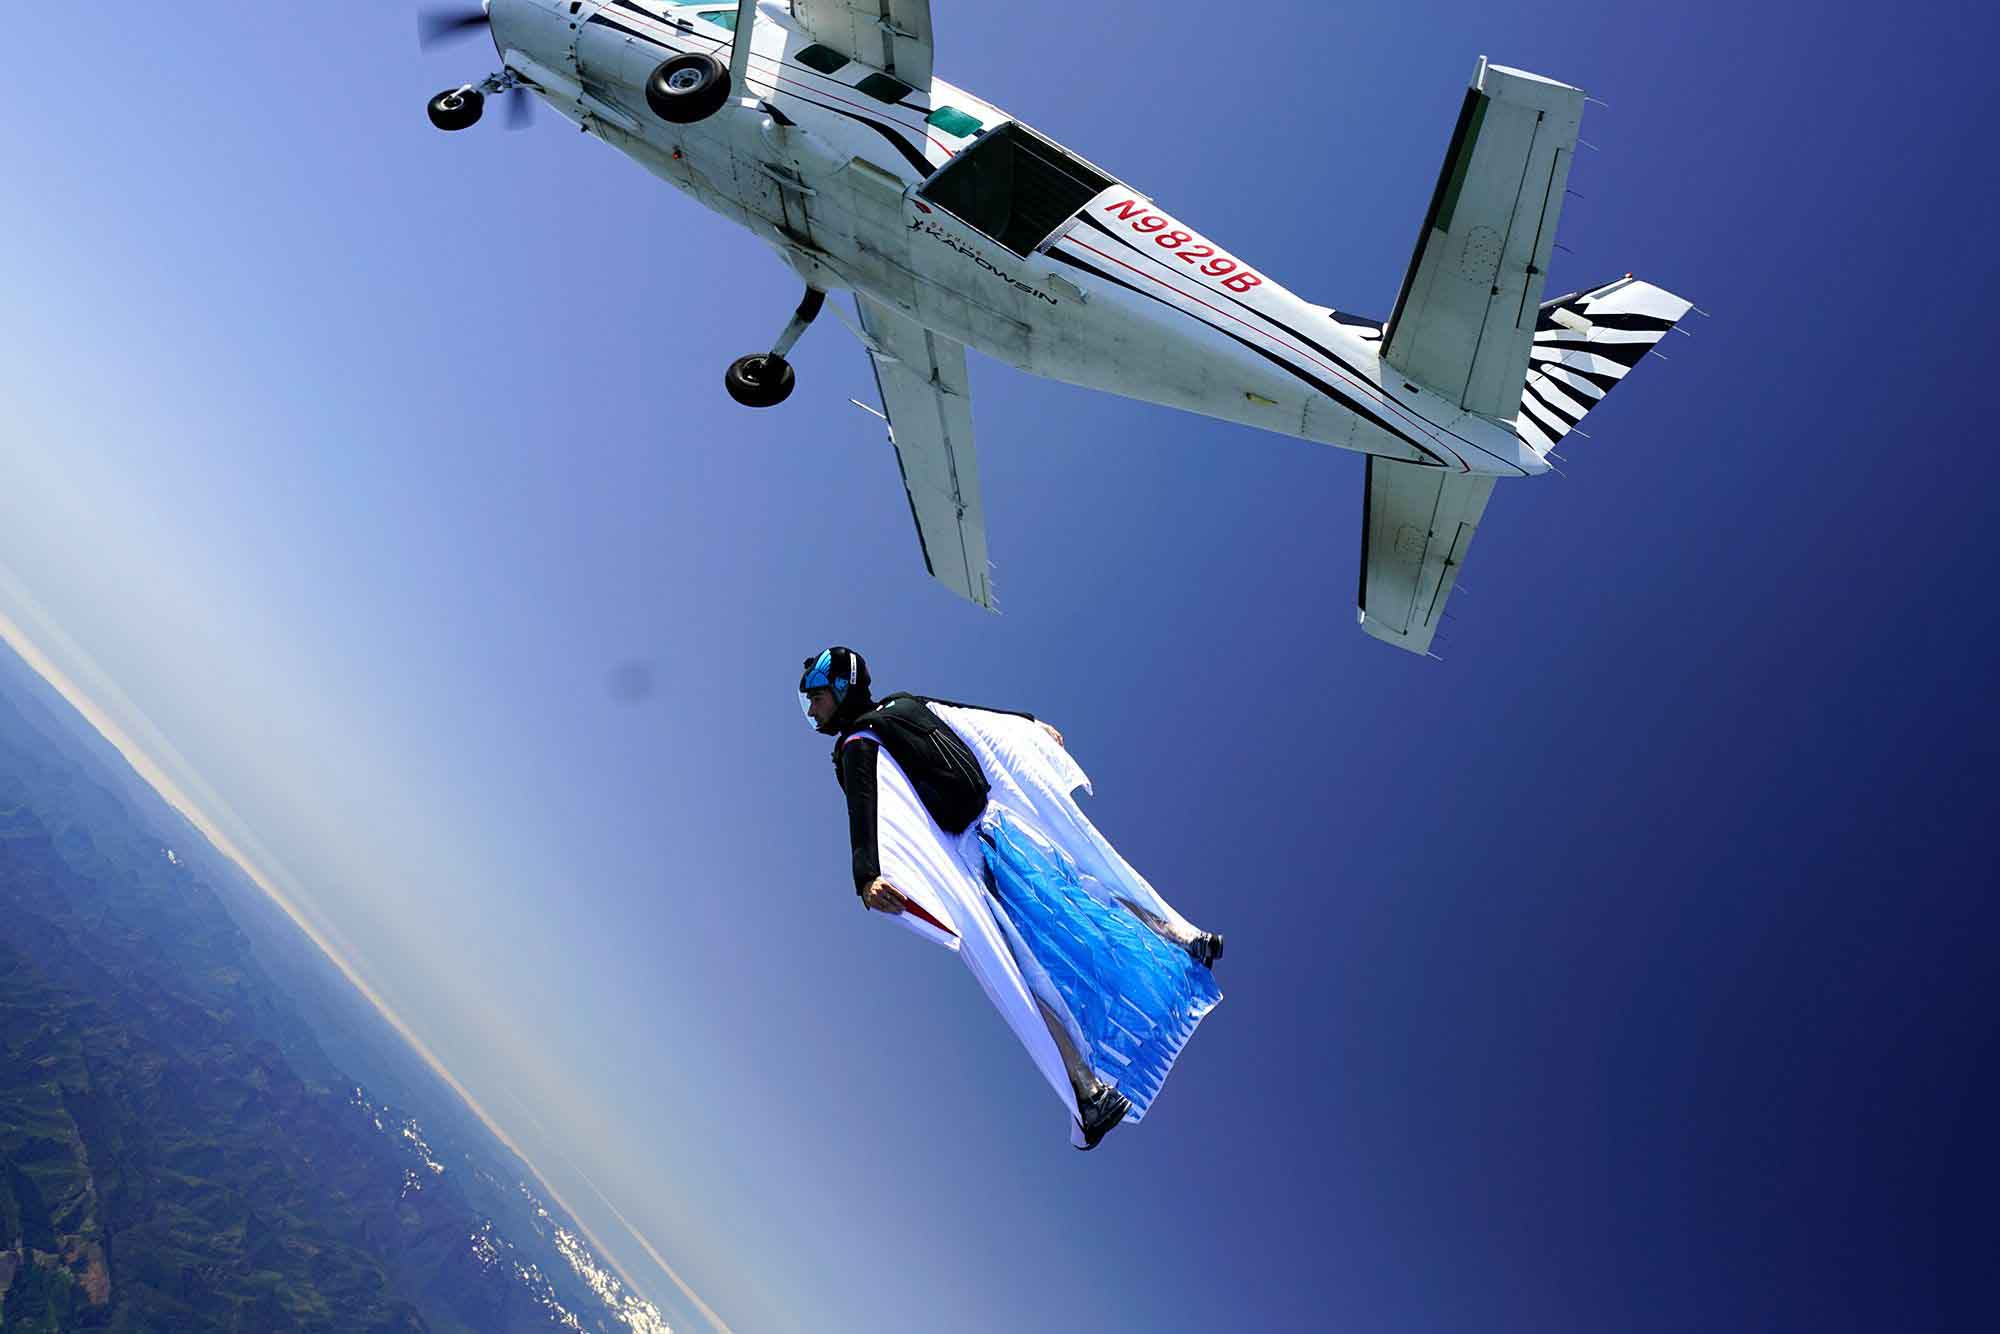 In single engine aircraft such as the Caravan (pictured), cutting the power during the wingsuit segment of jump run is very important